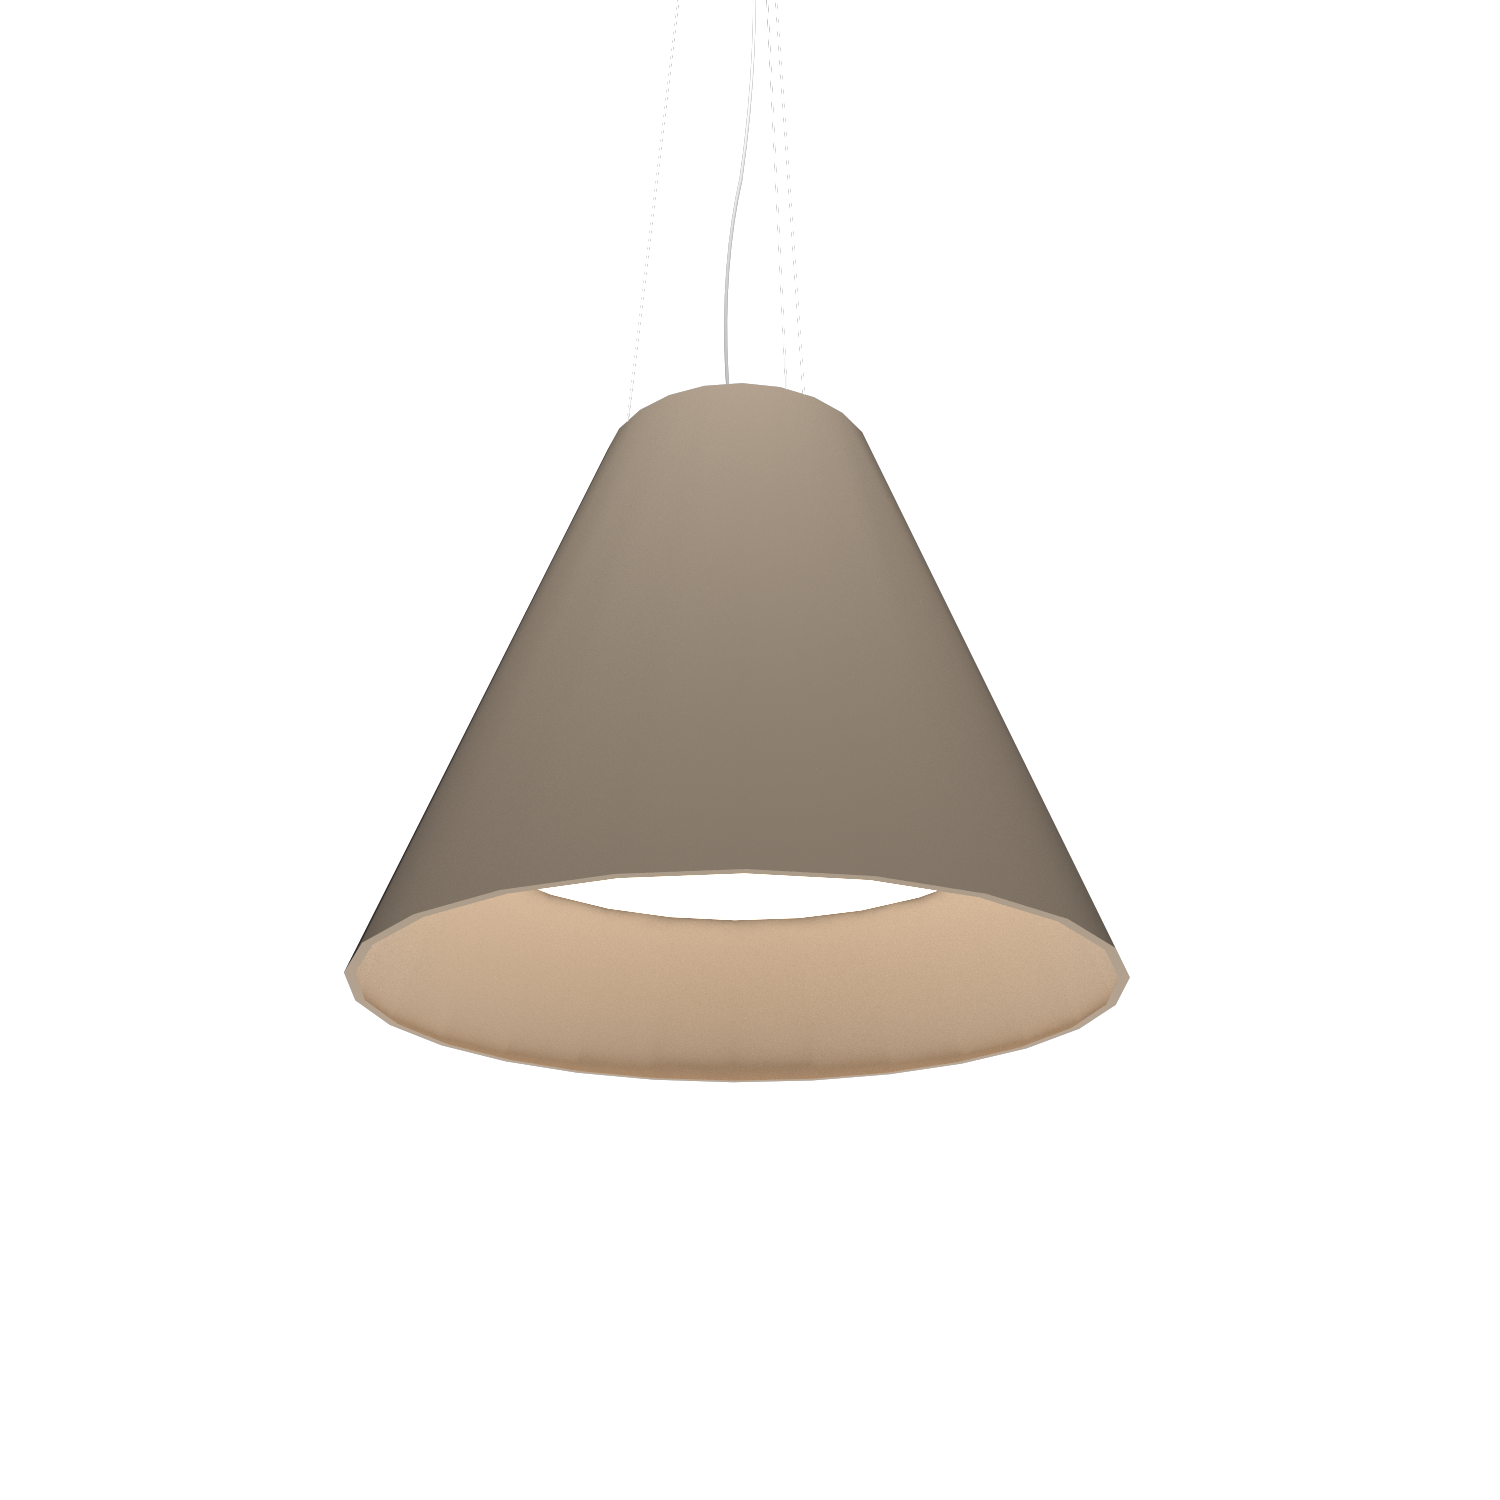 Pendant Lamp Accord Cônico 295 - Cônica Line Accord Lighting | 15. Cappuccino